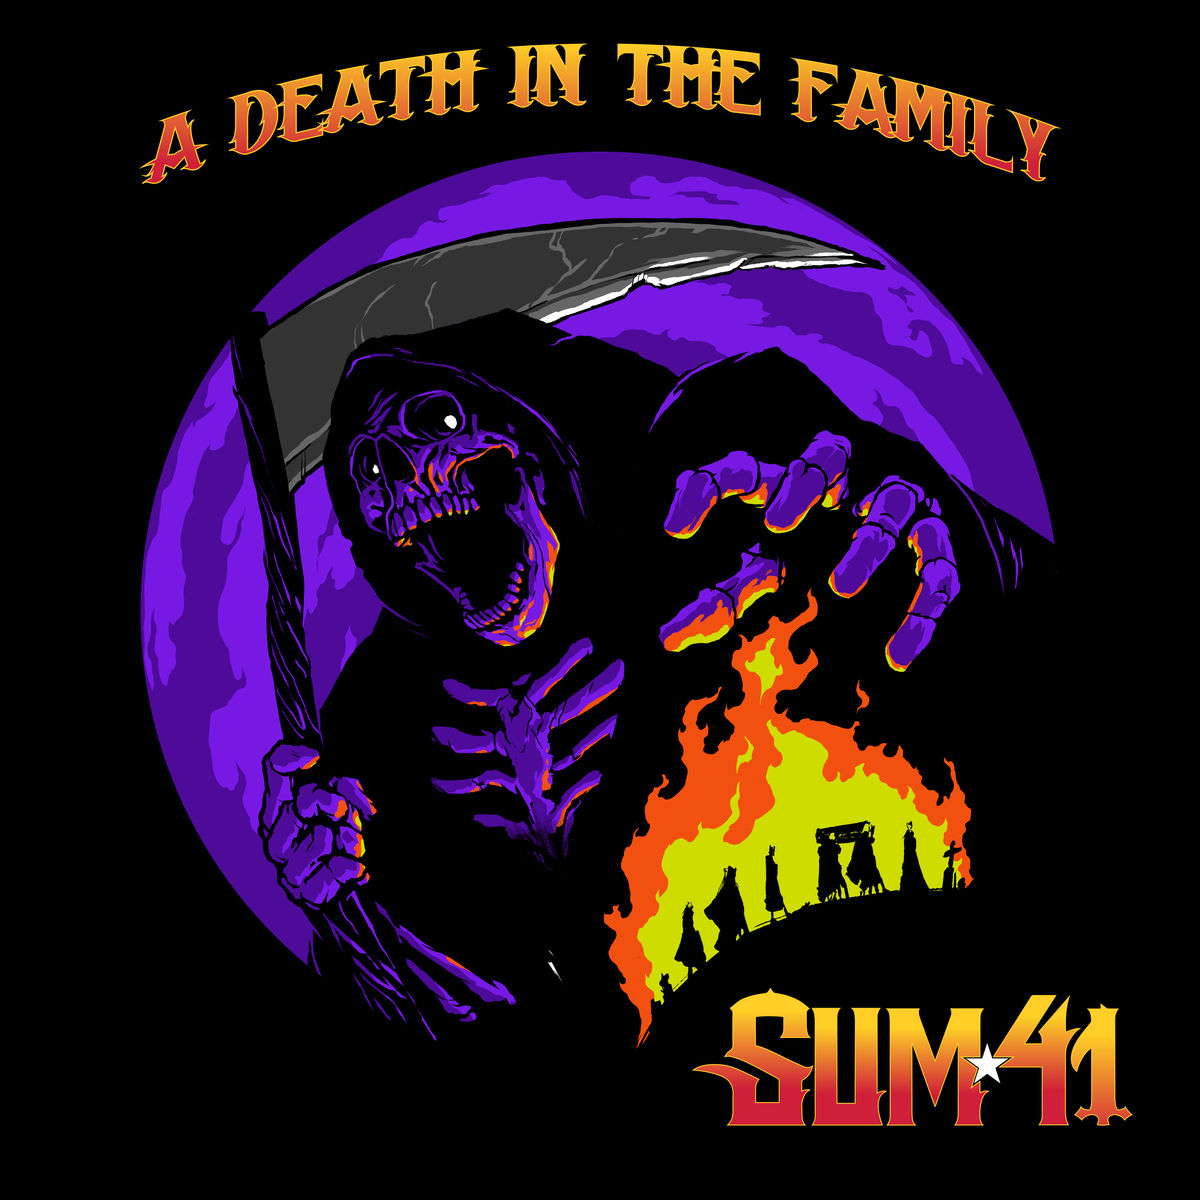 Sum 41 - A Death in the Family [single] (2019)